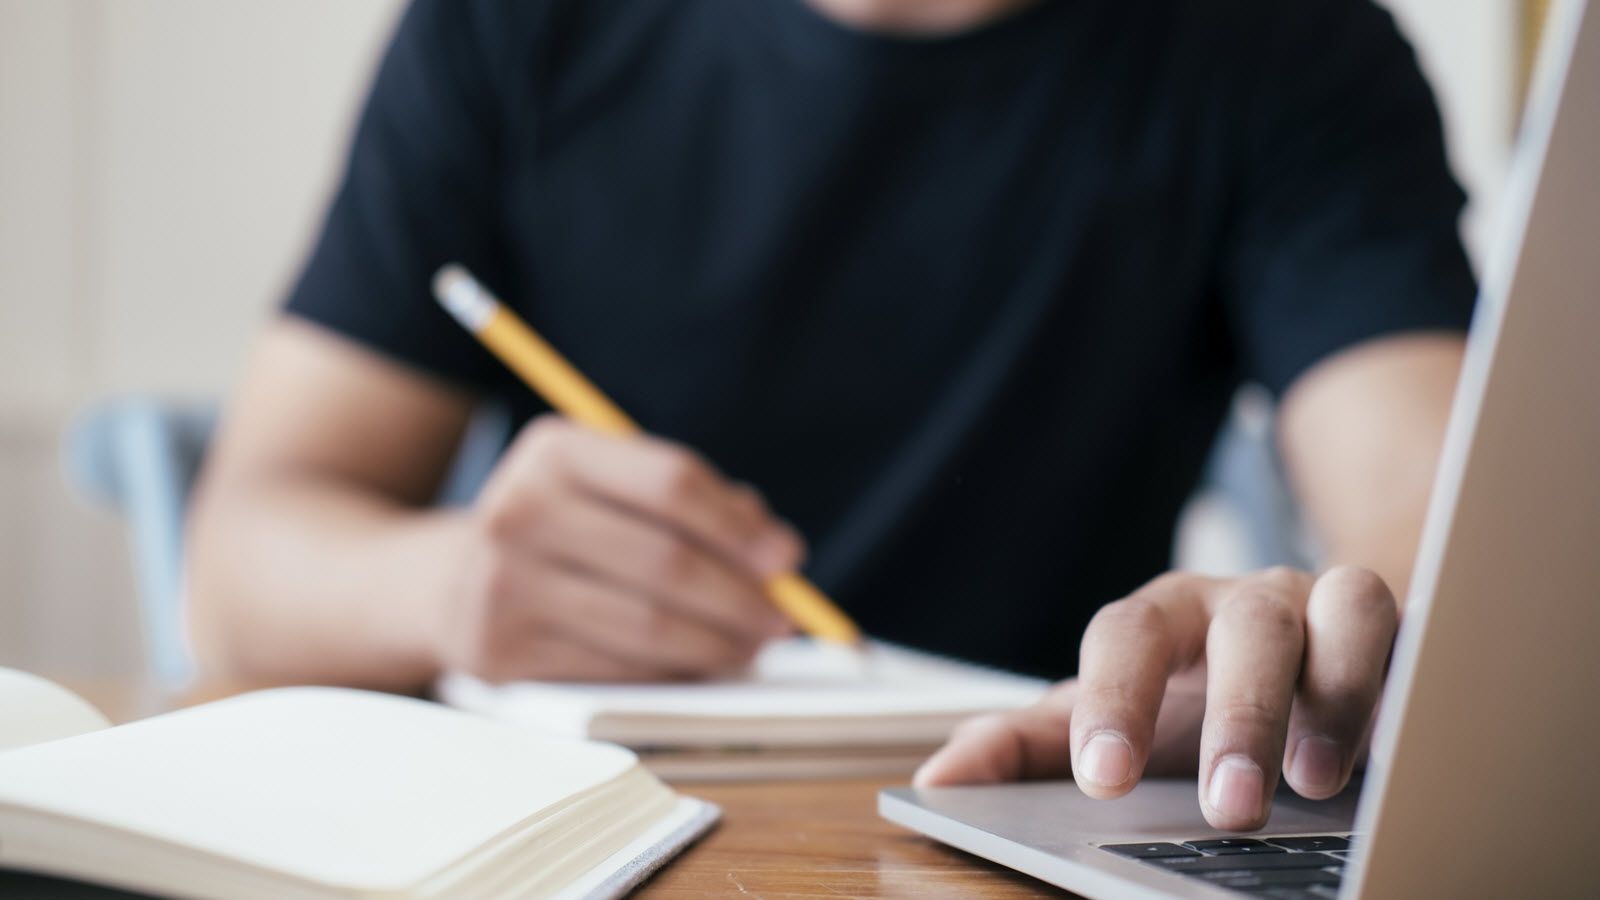 What To Know About Finding College Scholarships